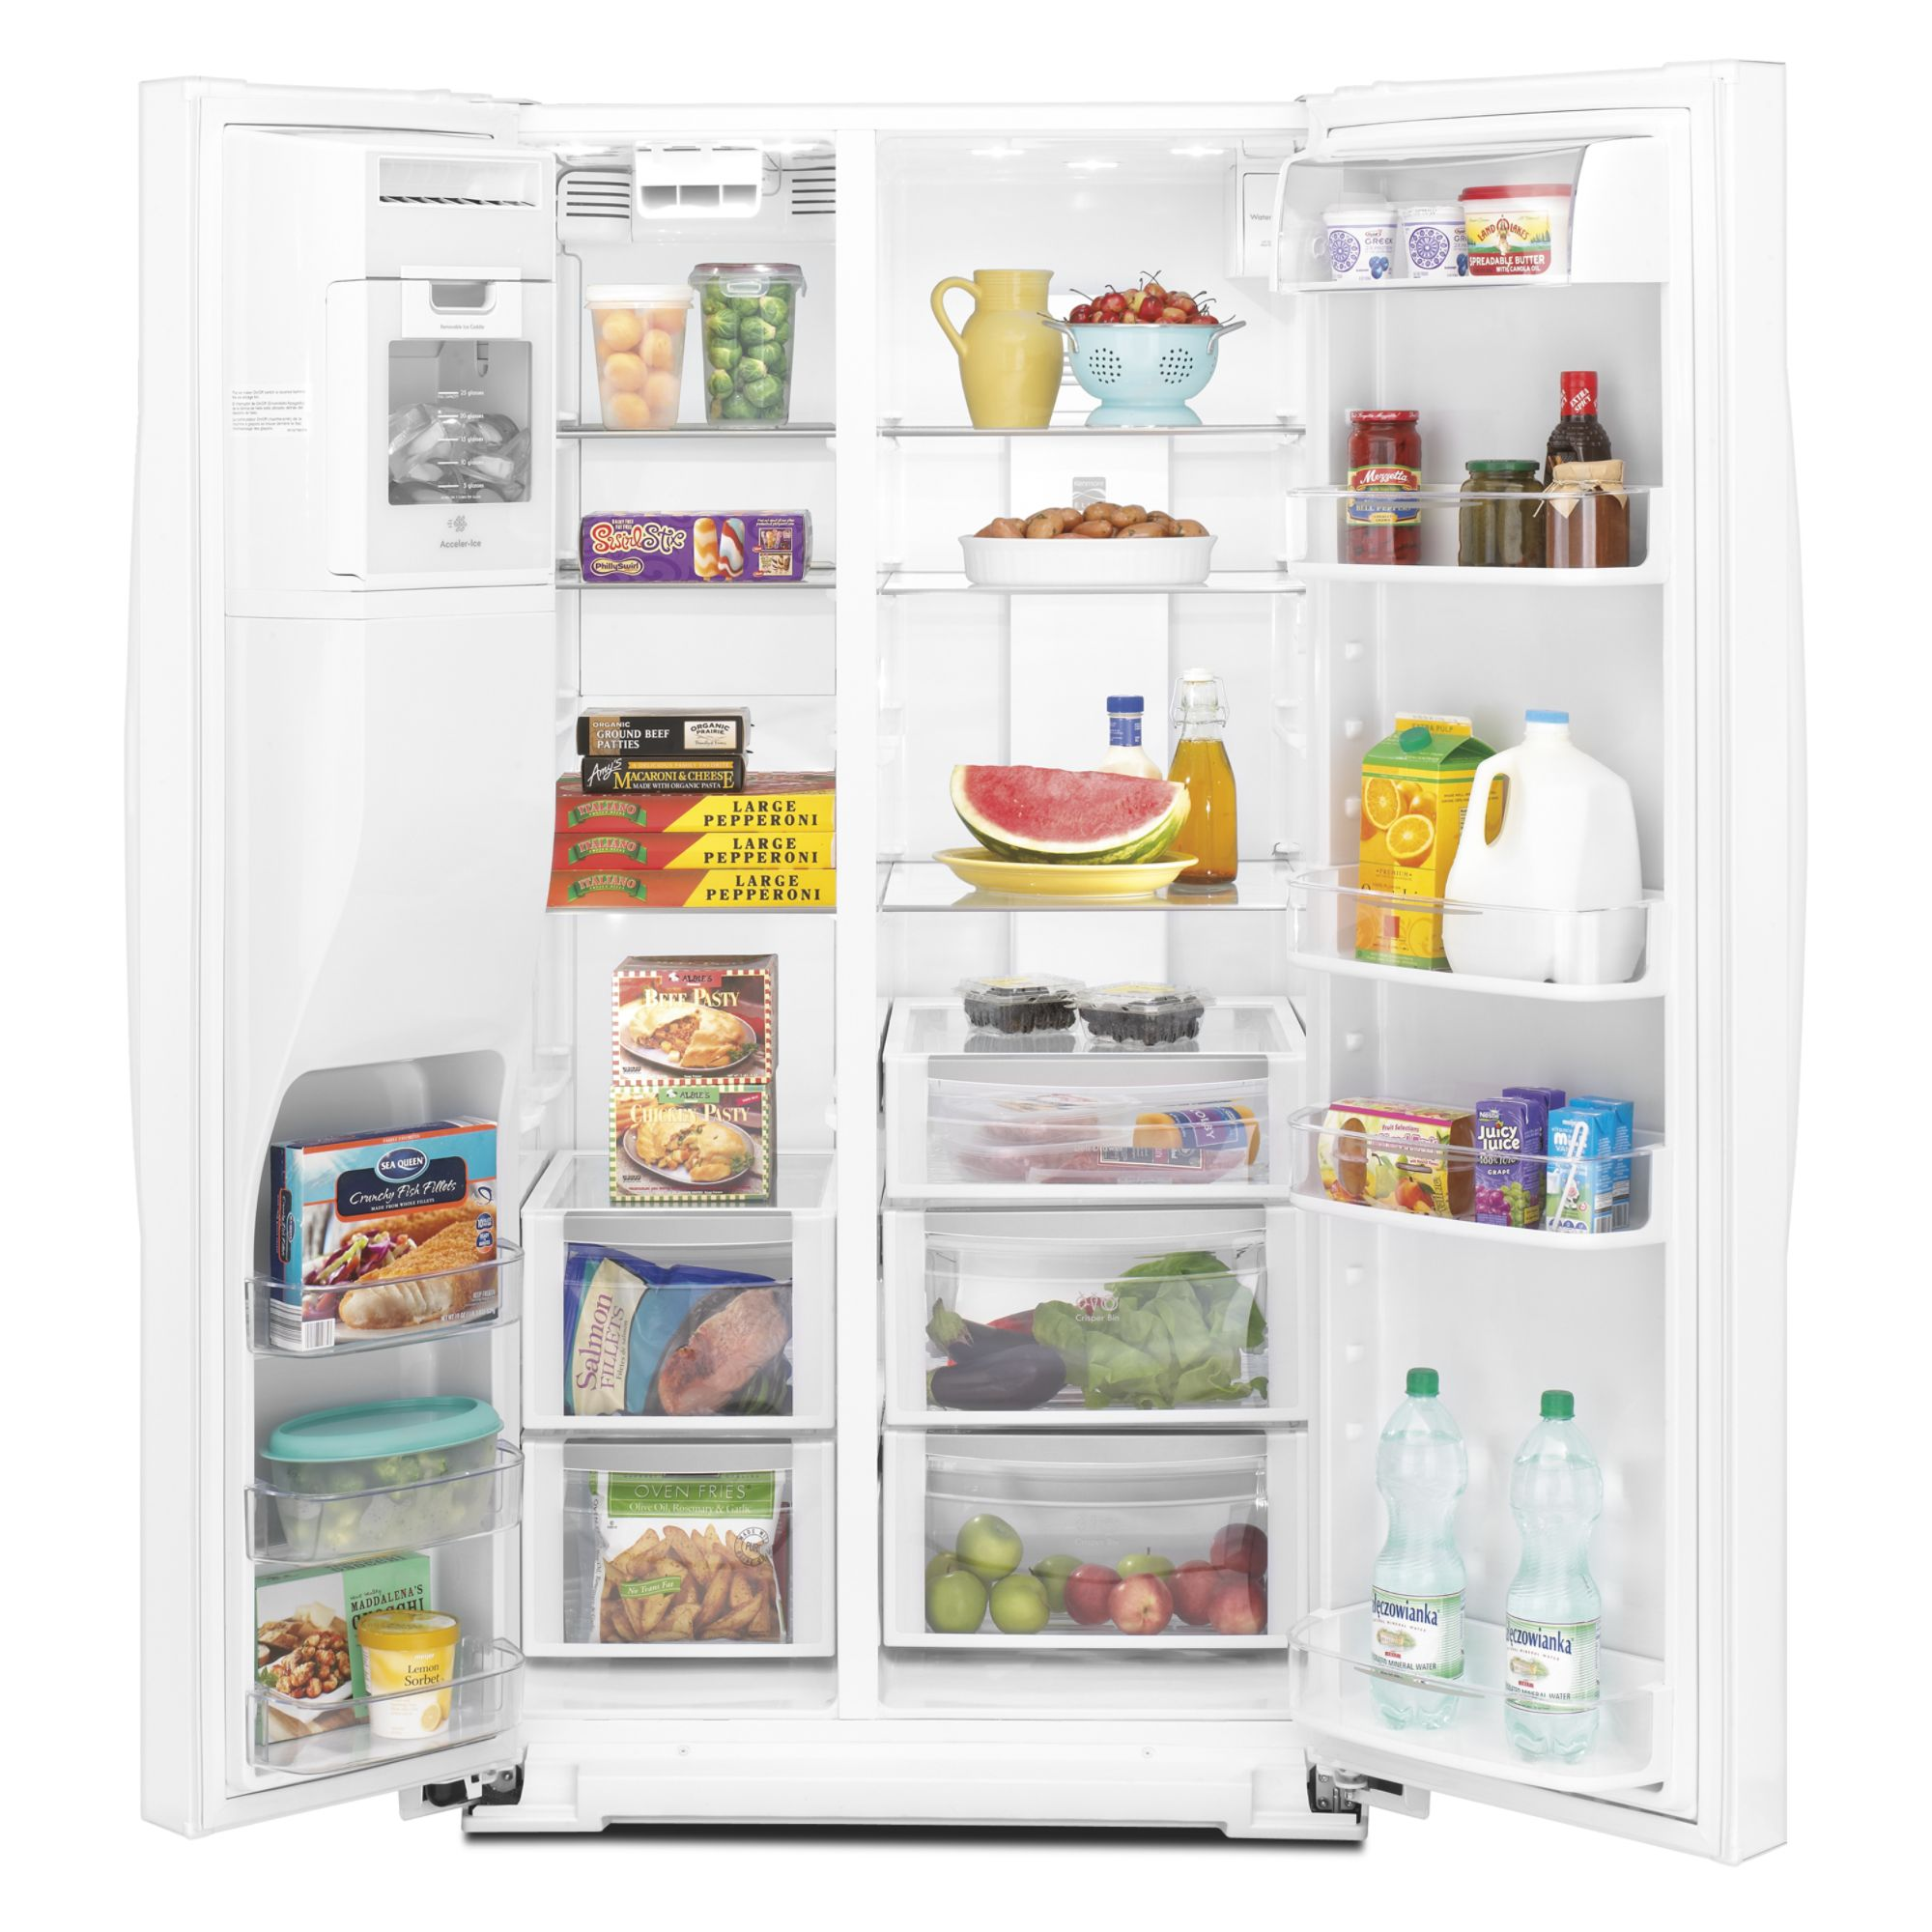 Kenmore Elite 29.2 cu. ft. Side-by-Side Refrigerator w/ Genius Cool™ - White